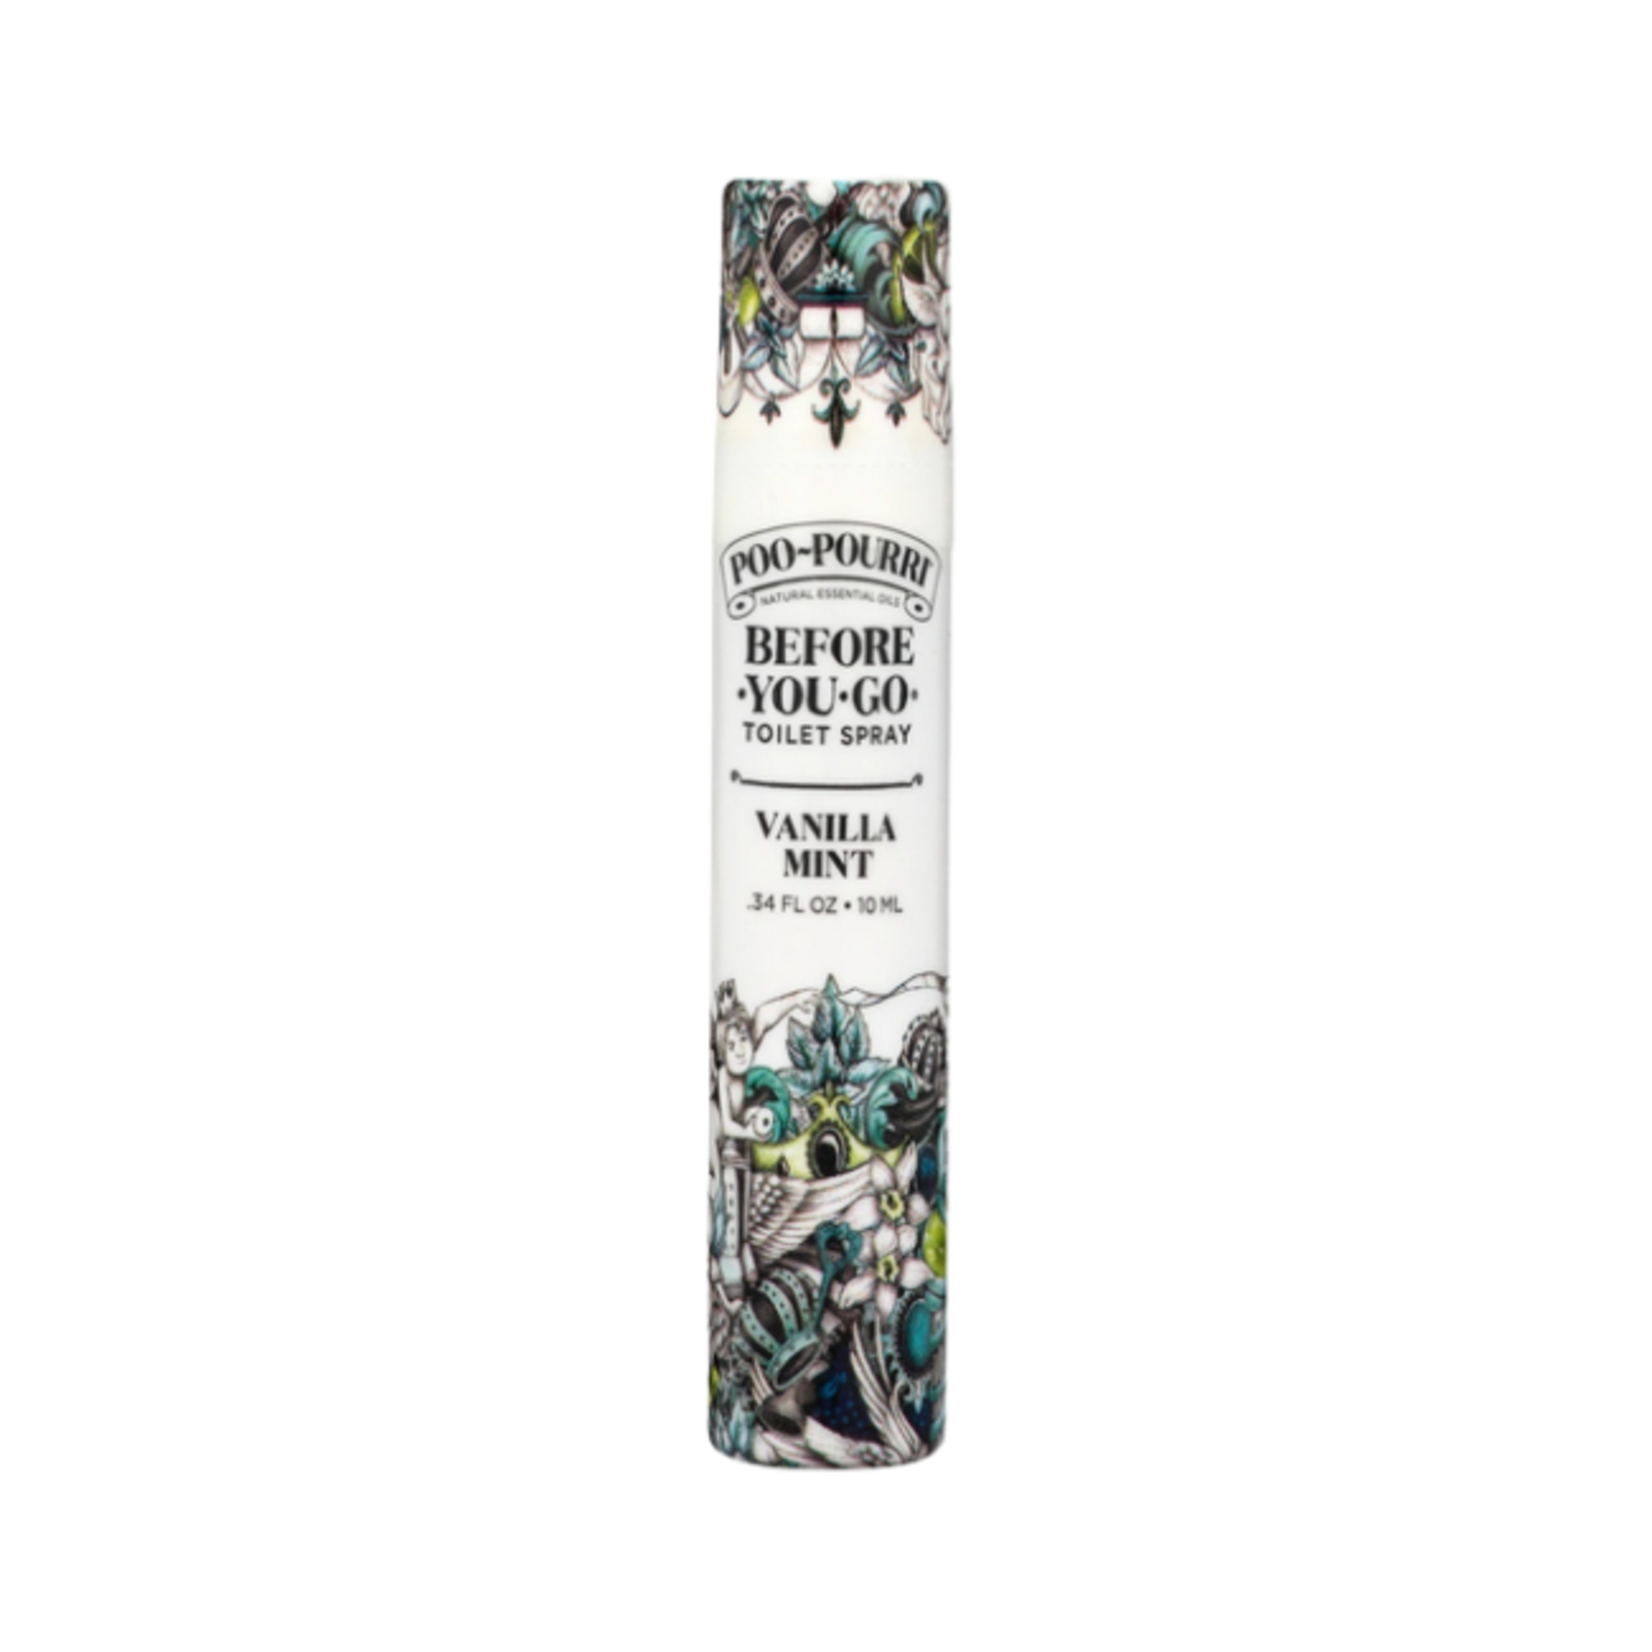 POO-POURRI POO-POURRI TRAVEL